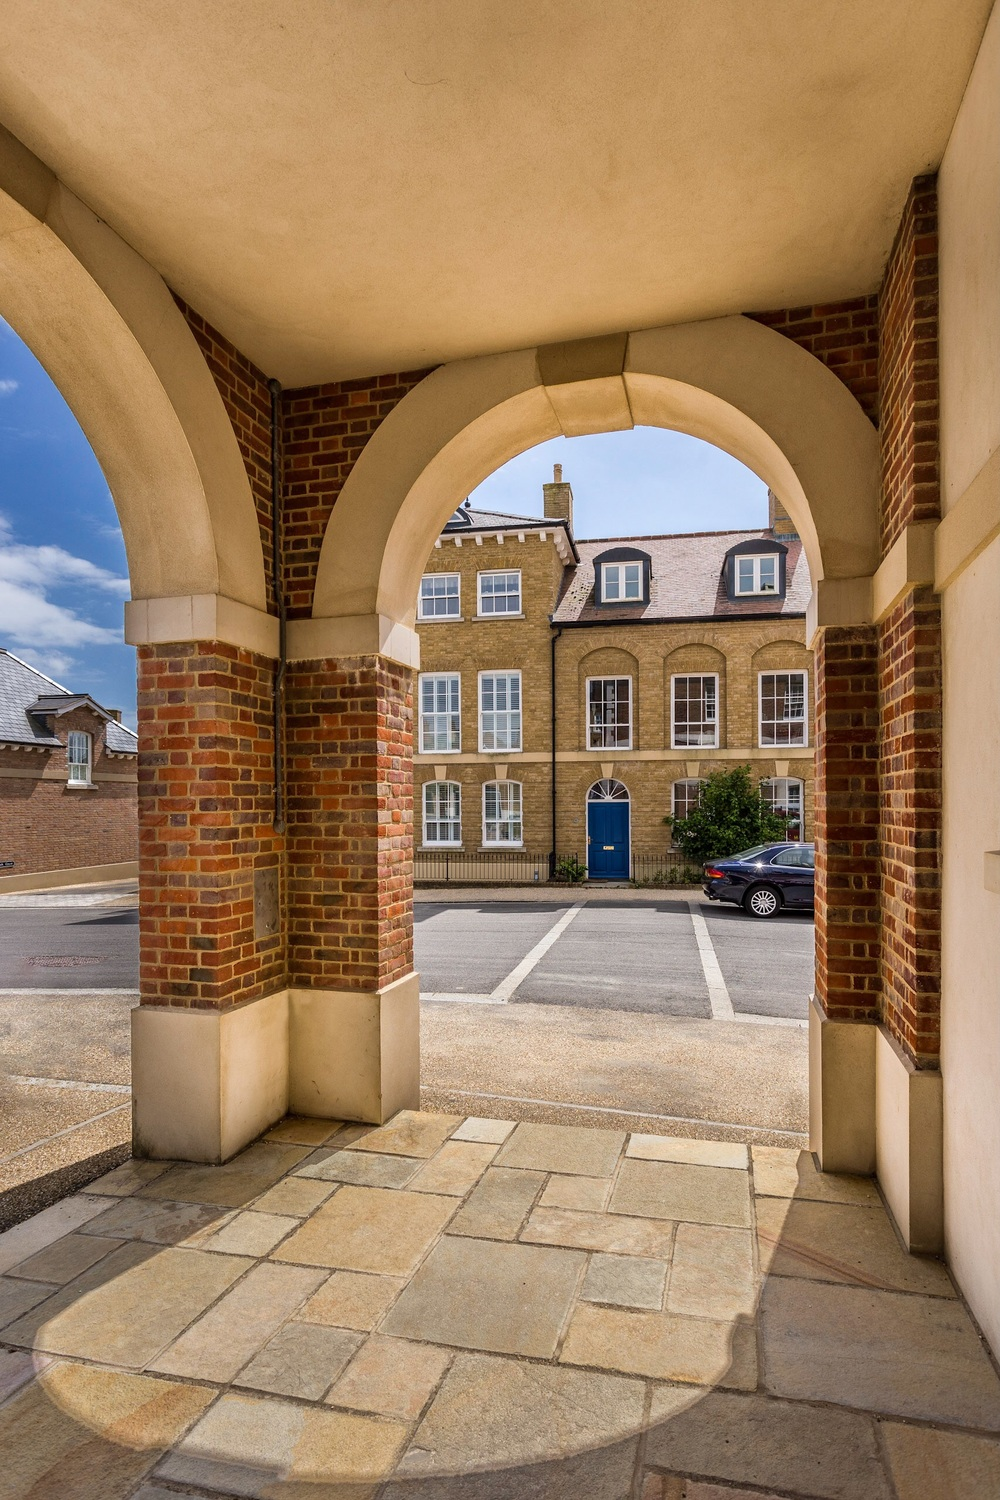 A picture of Poundbury, Dorset, by Rick McEvoy architectural photographer